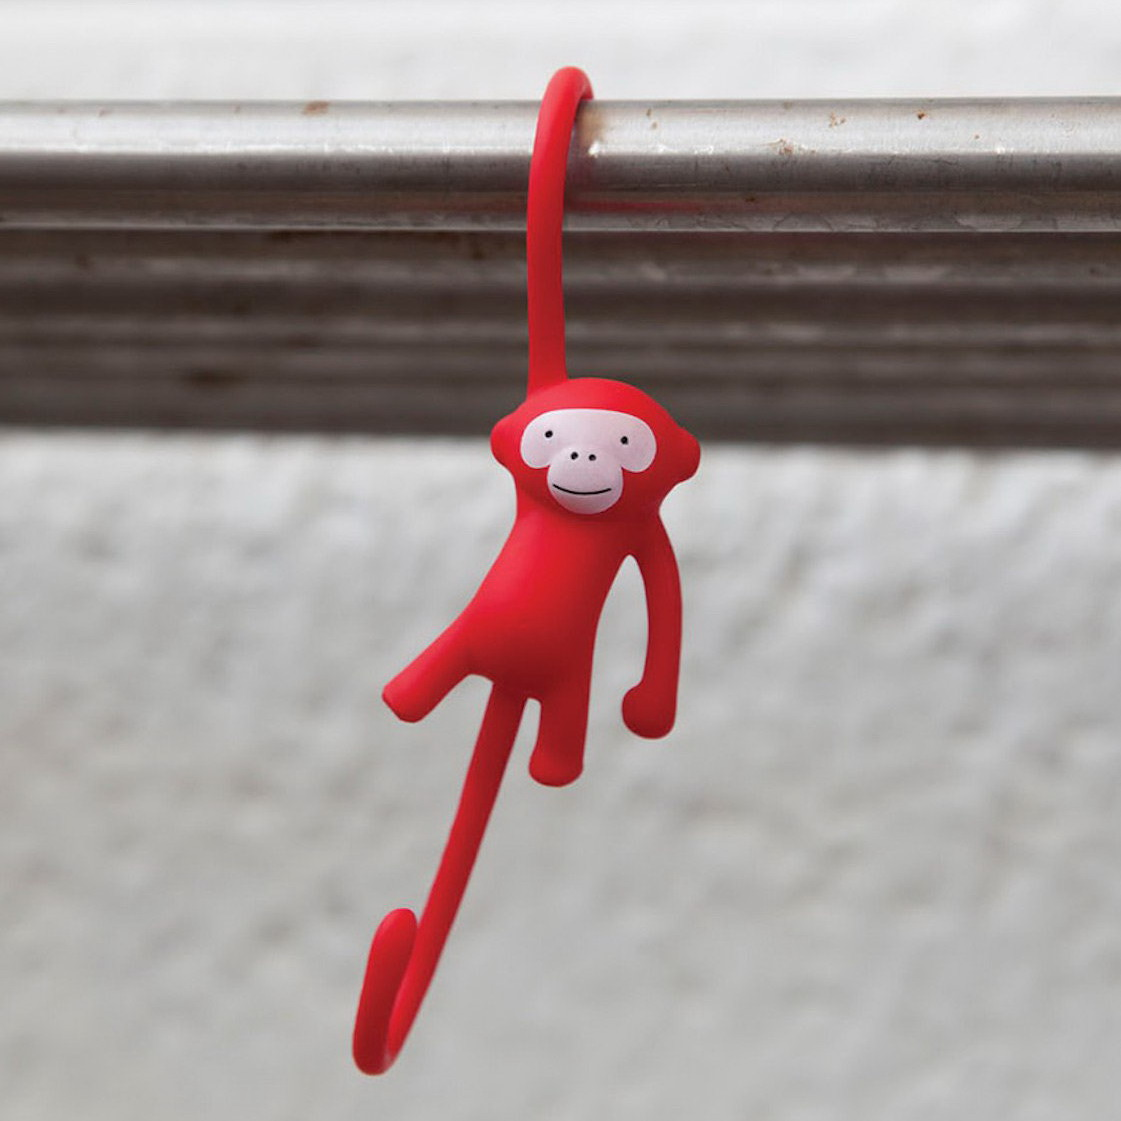 Monkey Business 猴子厨房吊钩/just hanging kitchen hooks-3